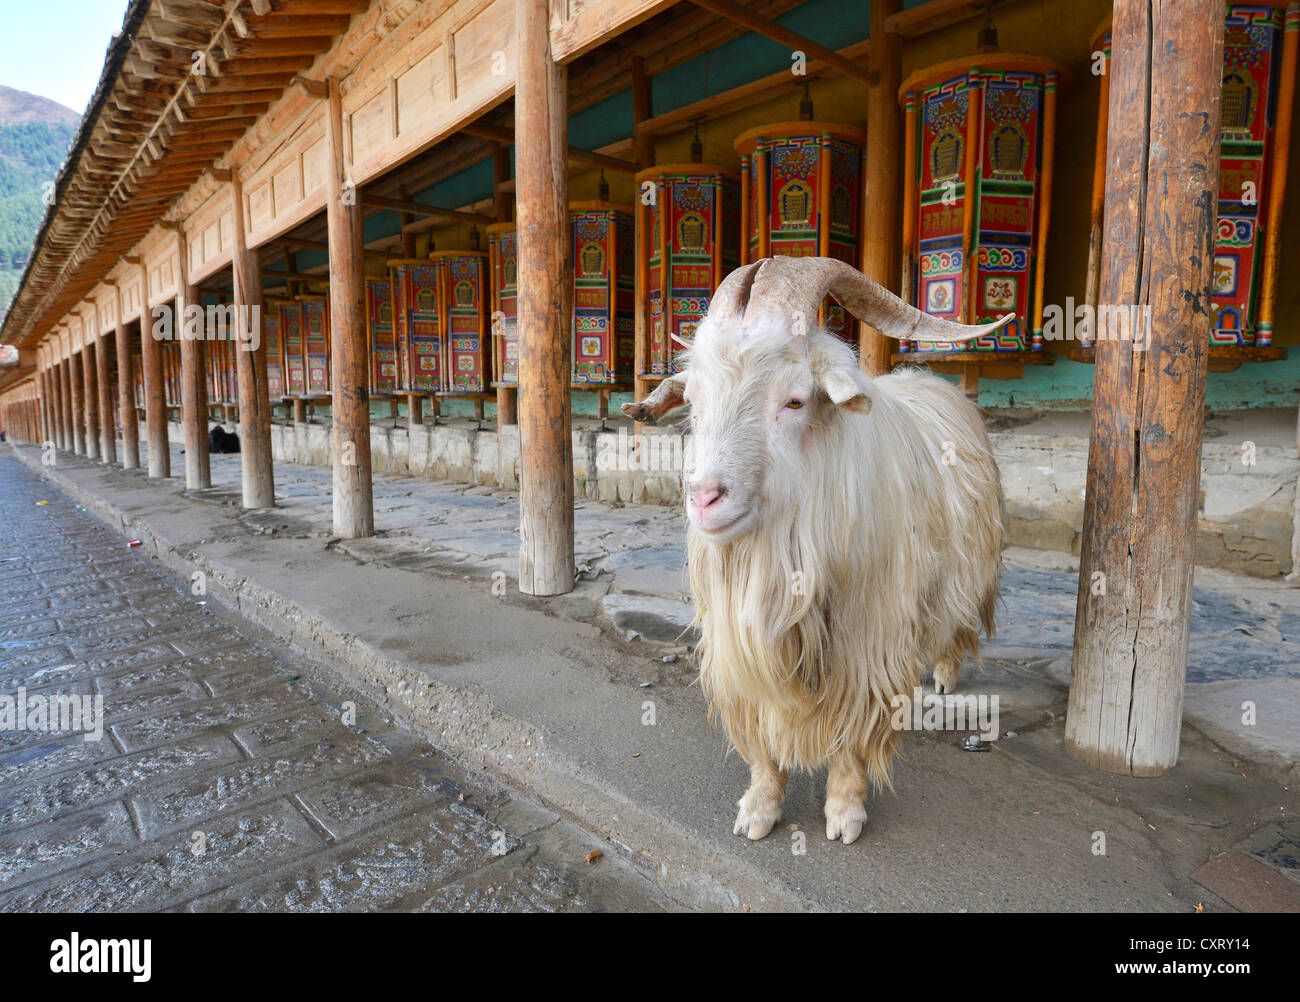 Ram standing in front of the prayer mills, arcade, Kora at the Labrang Monastery, Xiahe, Gansu, formerly known as - Stock Image